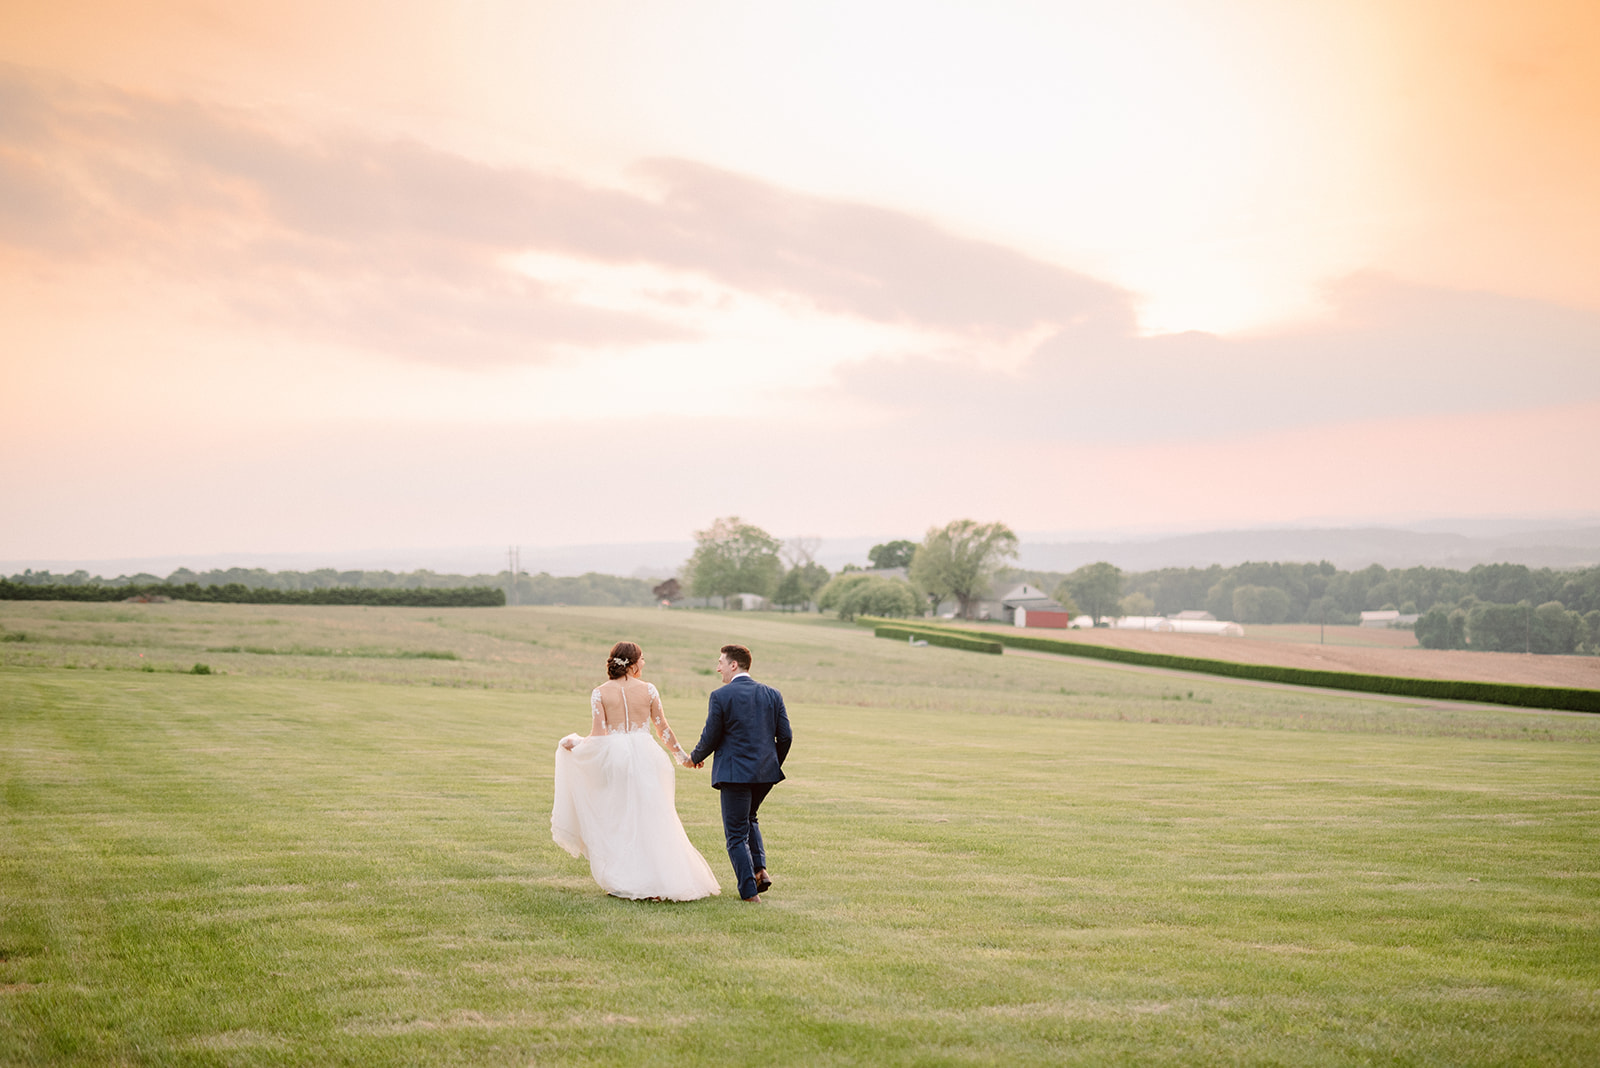 Bride and Groom enjoy a sunset at Drumore Estate during their wedding day.